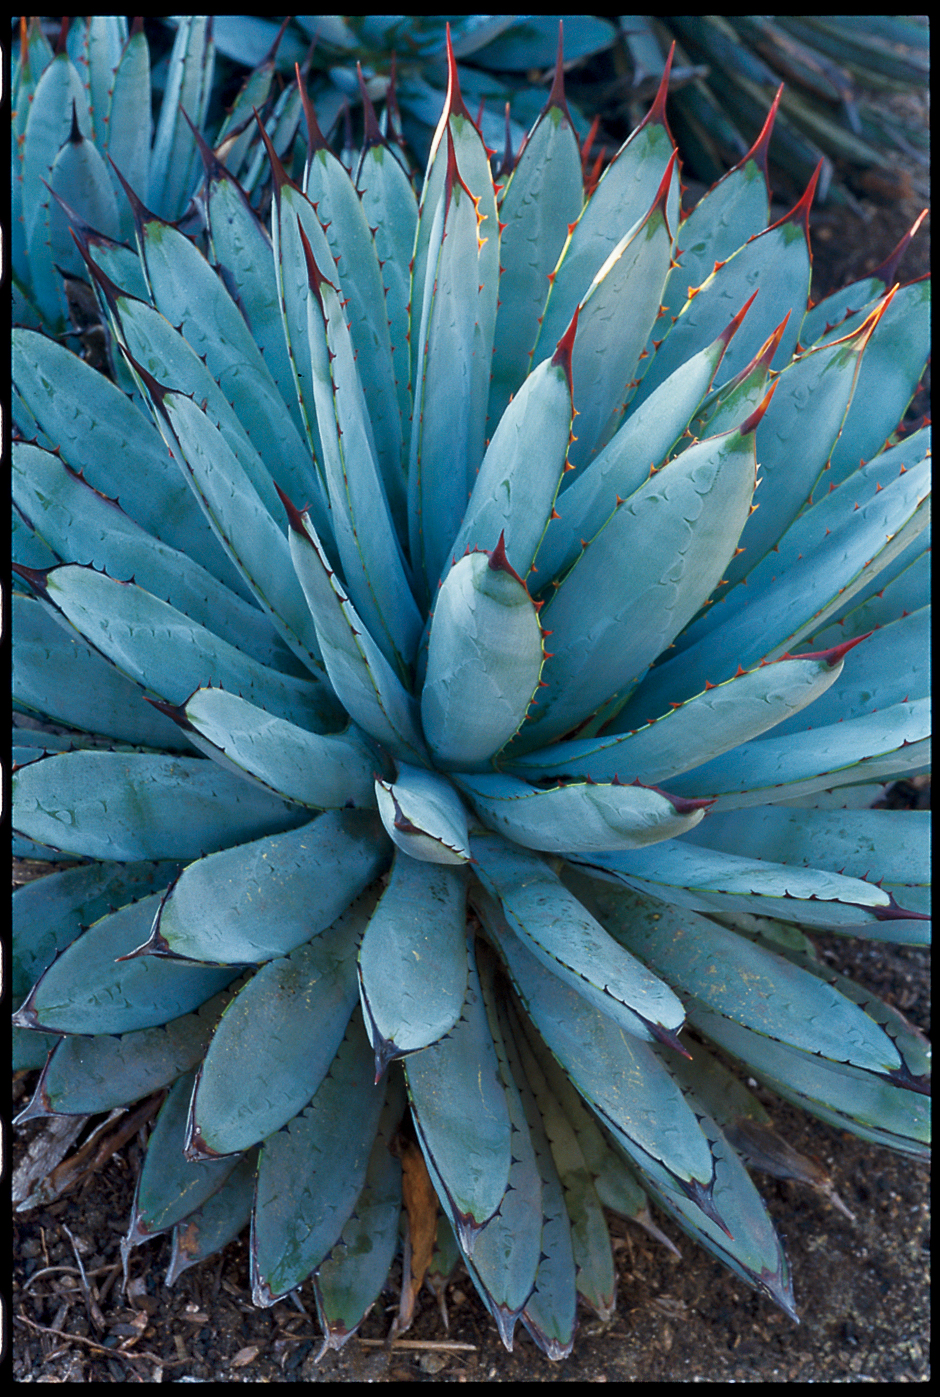 Black spined agave